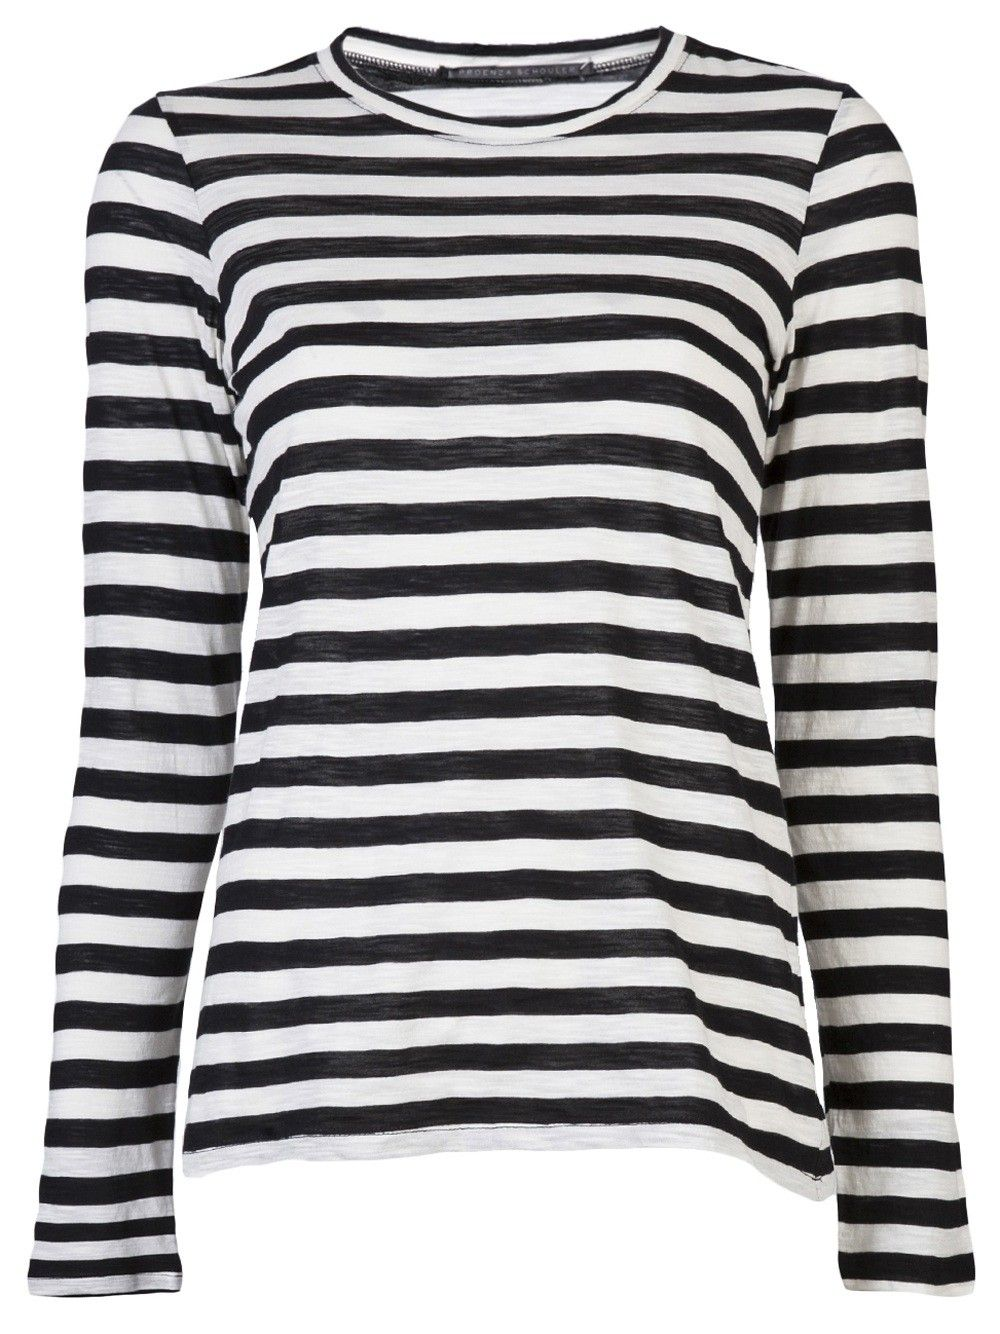 black and white striped t shirt long sleeve